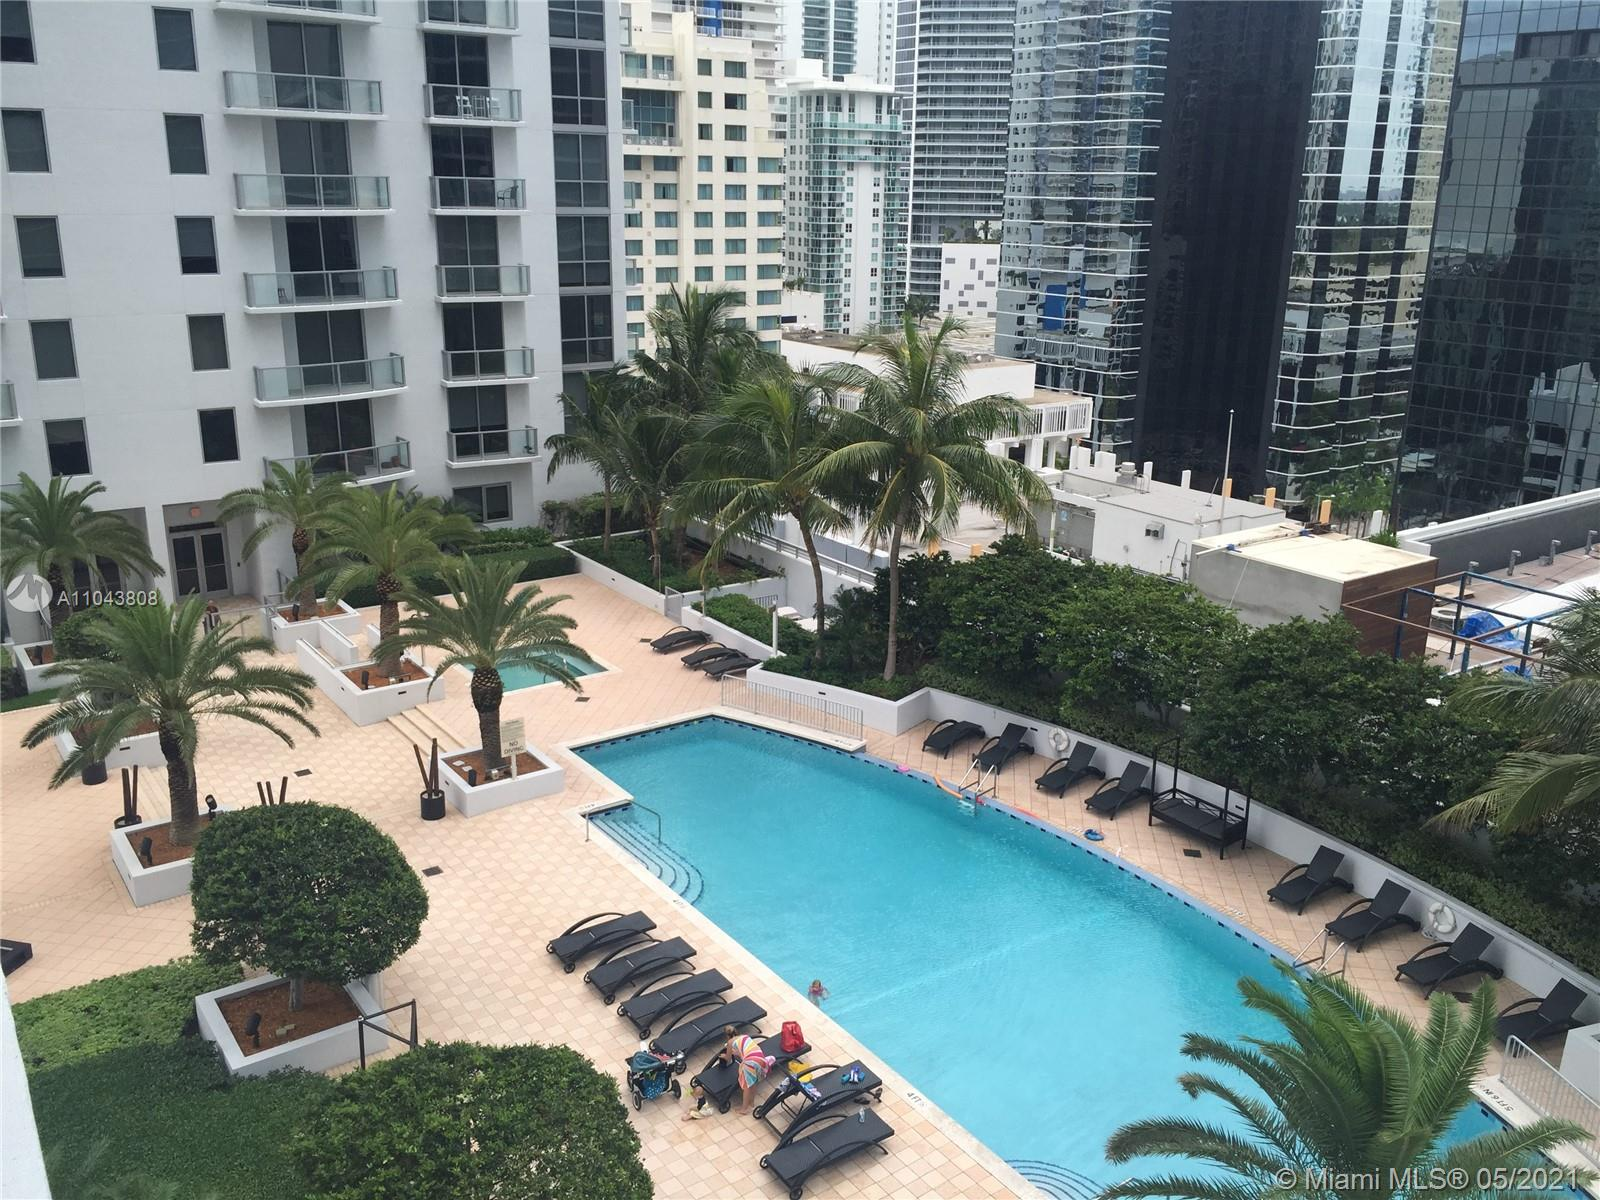 Spectacular studio in the hear of Brickell with ALL INCLUDED!! Internet, cable and FPL. Ready to move in!!! Completely remodel unit, exquisitely decorated with top of the line finishes.